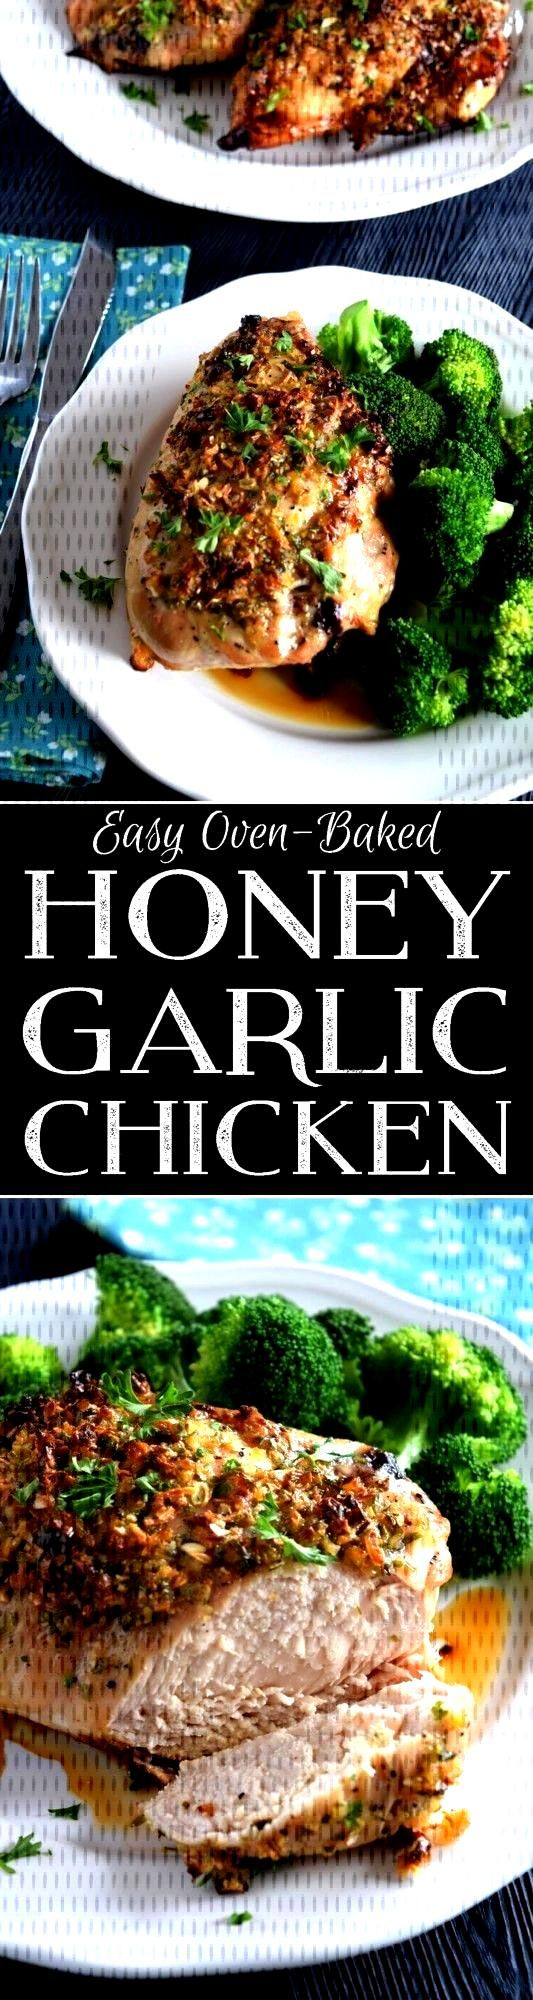 Easy Oven Baked Honey Garlic Chicken - Lord Byrons Kitchen -